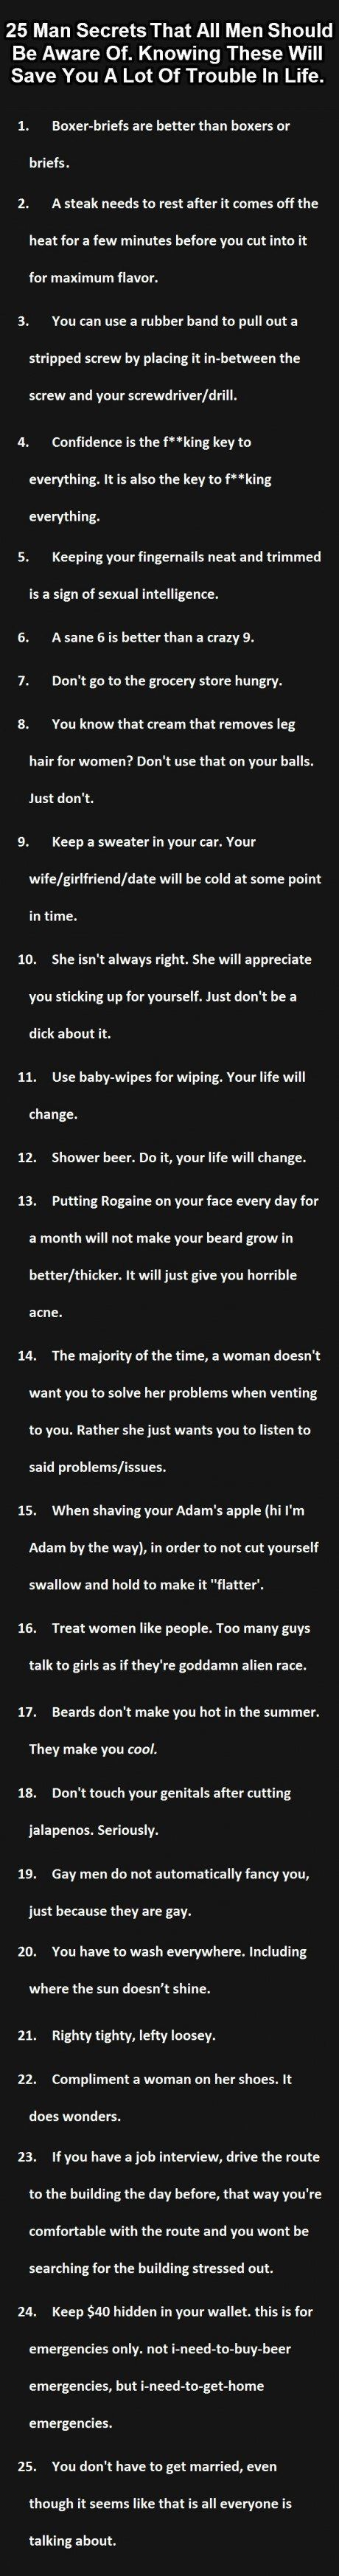 25 Man facts you should know. Many I knew, a few I needed a reminder for and some I had no clue.